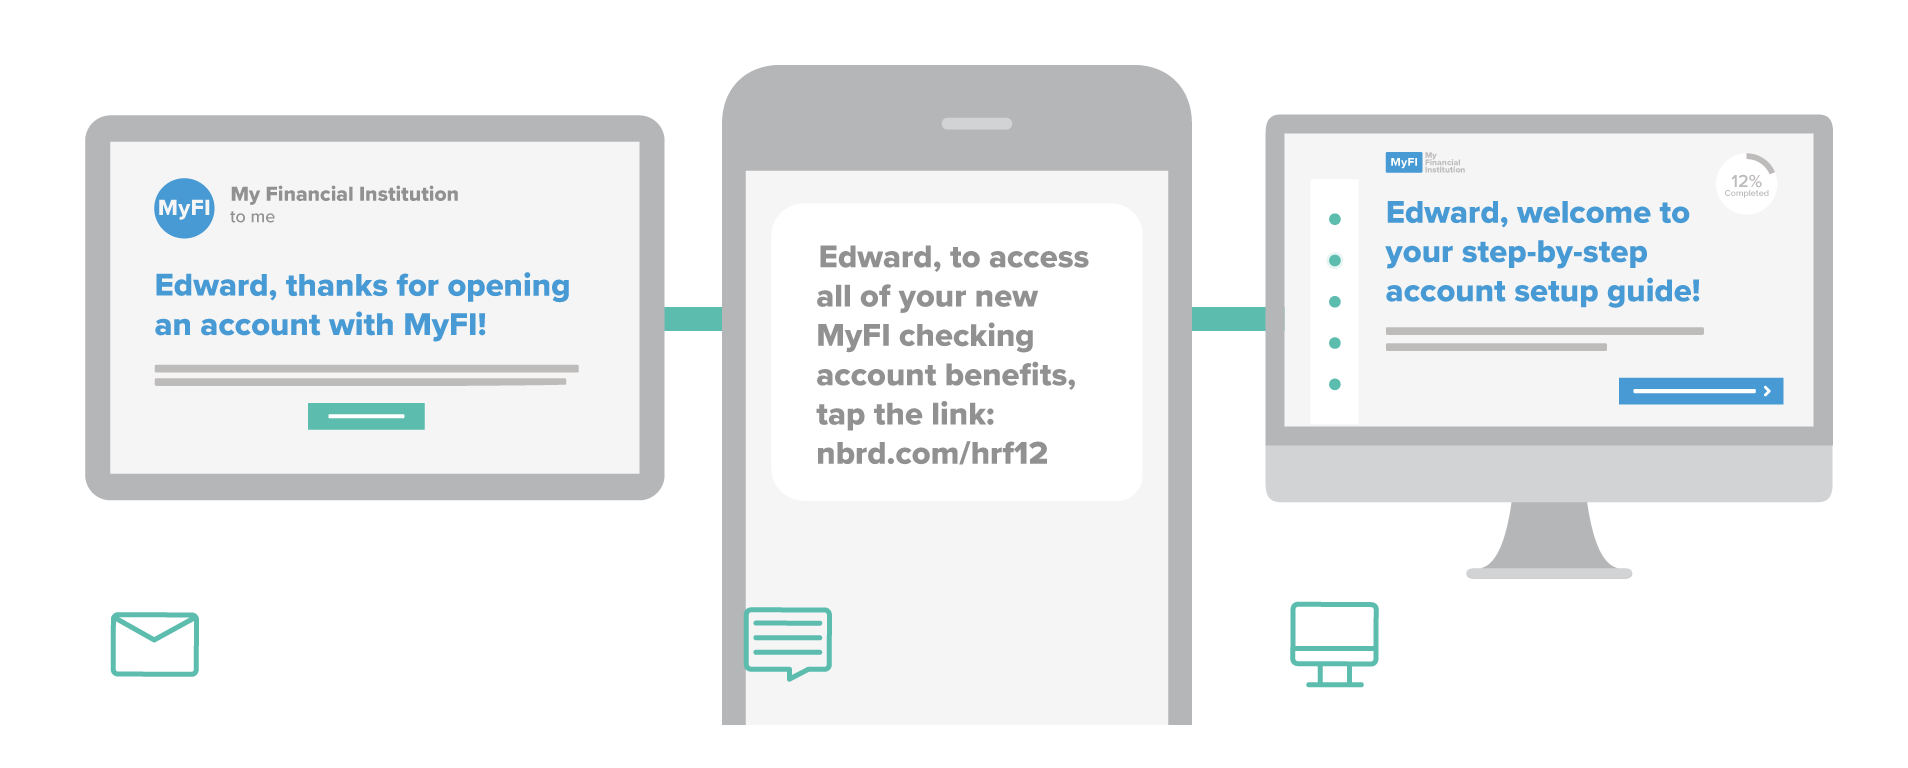 Image of example digital onboarding services